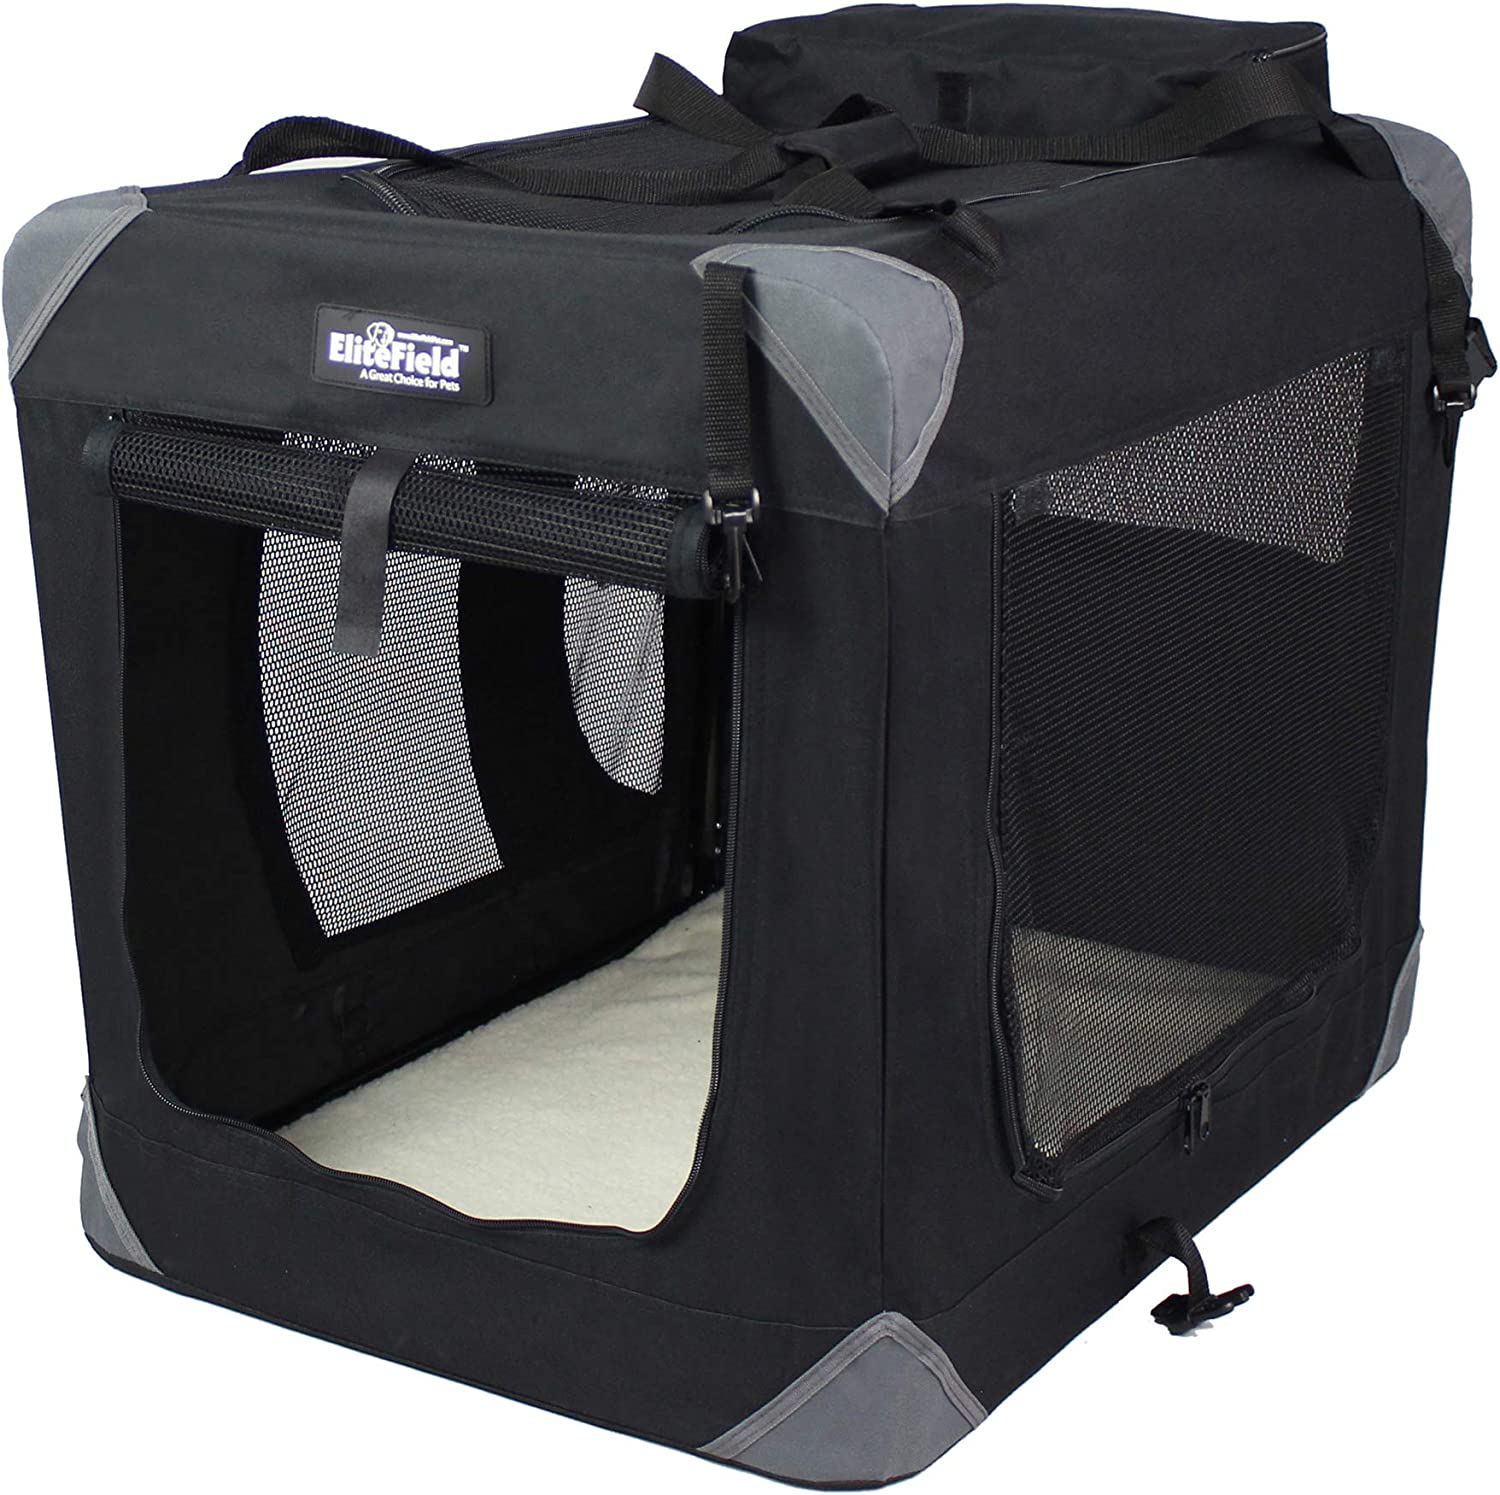 """EliteField 3-Door Folding Soft Dog Crate, Indoor & Outdoor Pet Home, Multiple Sizes and Colors Available (42"""" L x 28"""" W x 32"""" H, Black)"""